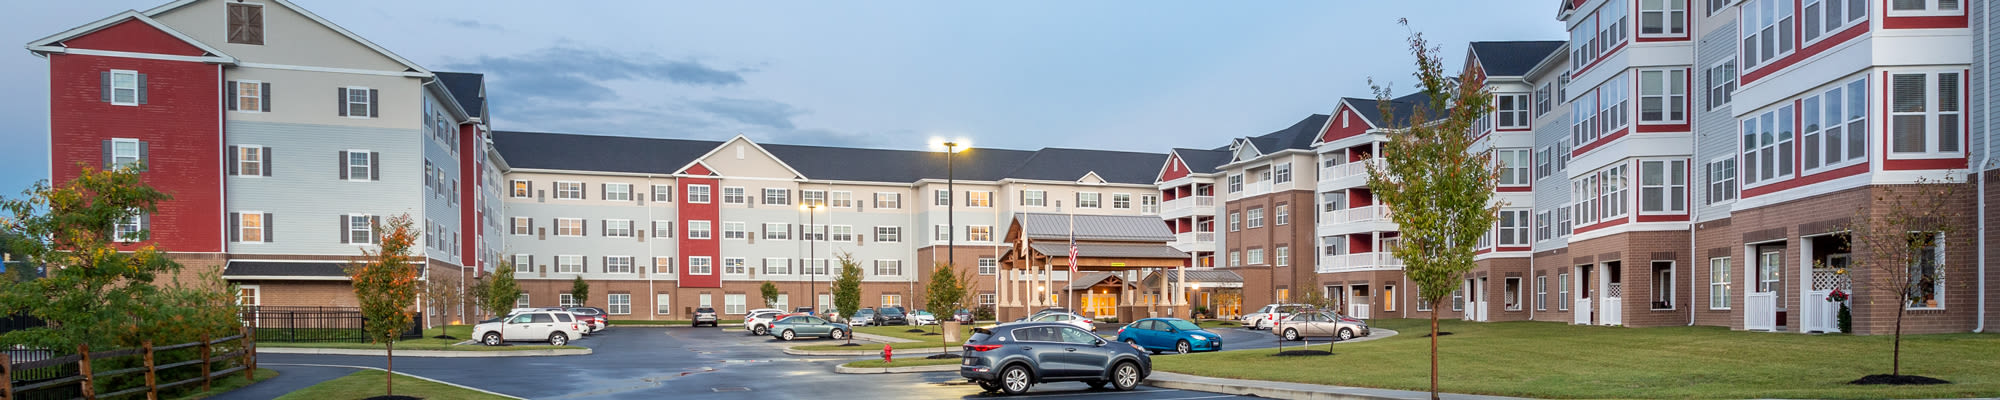 Our Community at Harmony at West Shore in Mechanicsburg, Pennsylvania